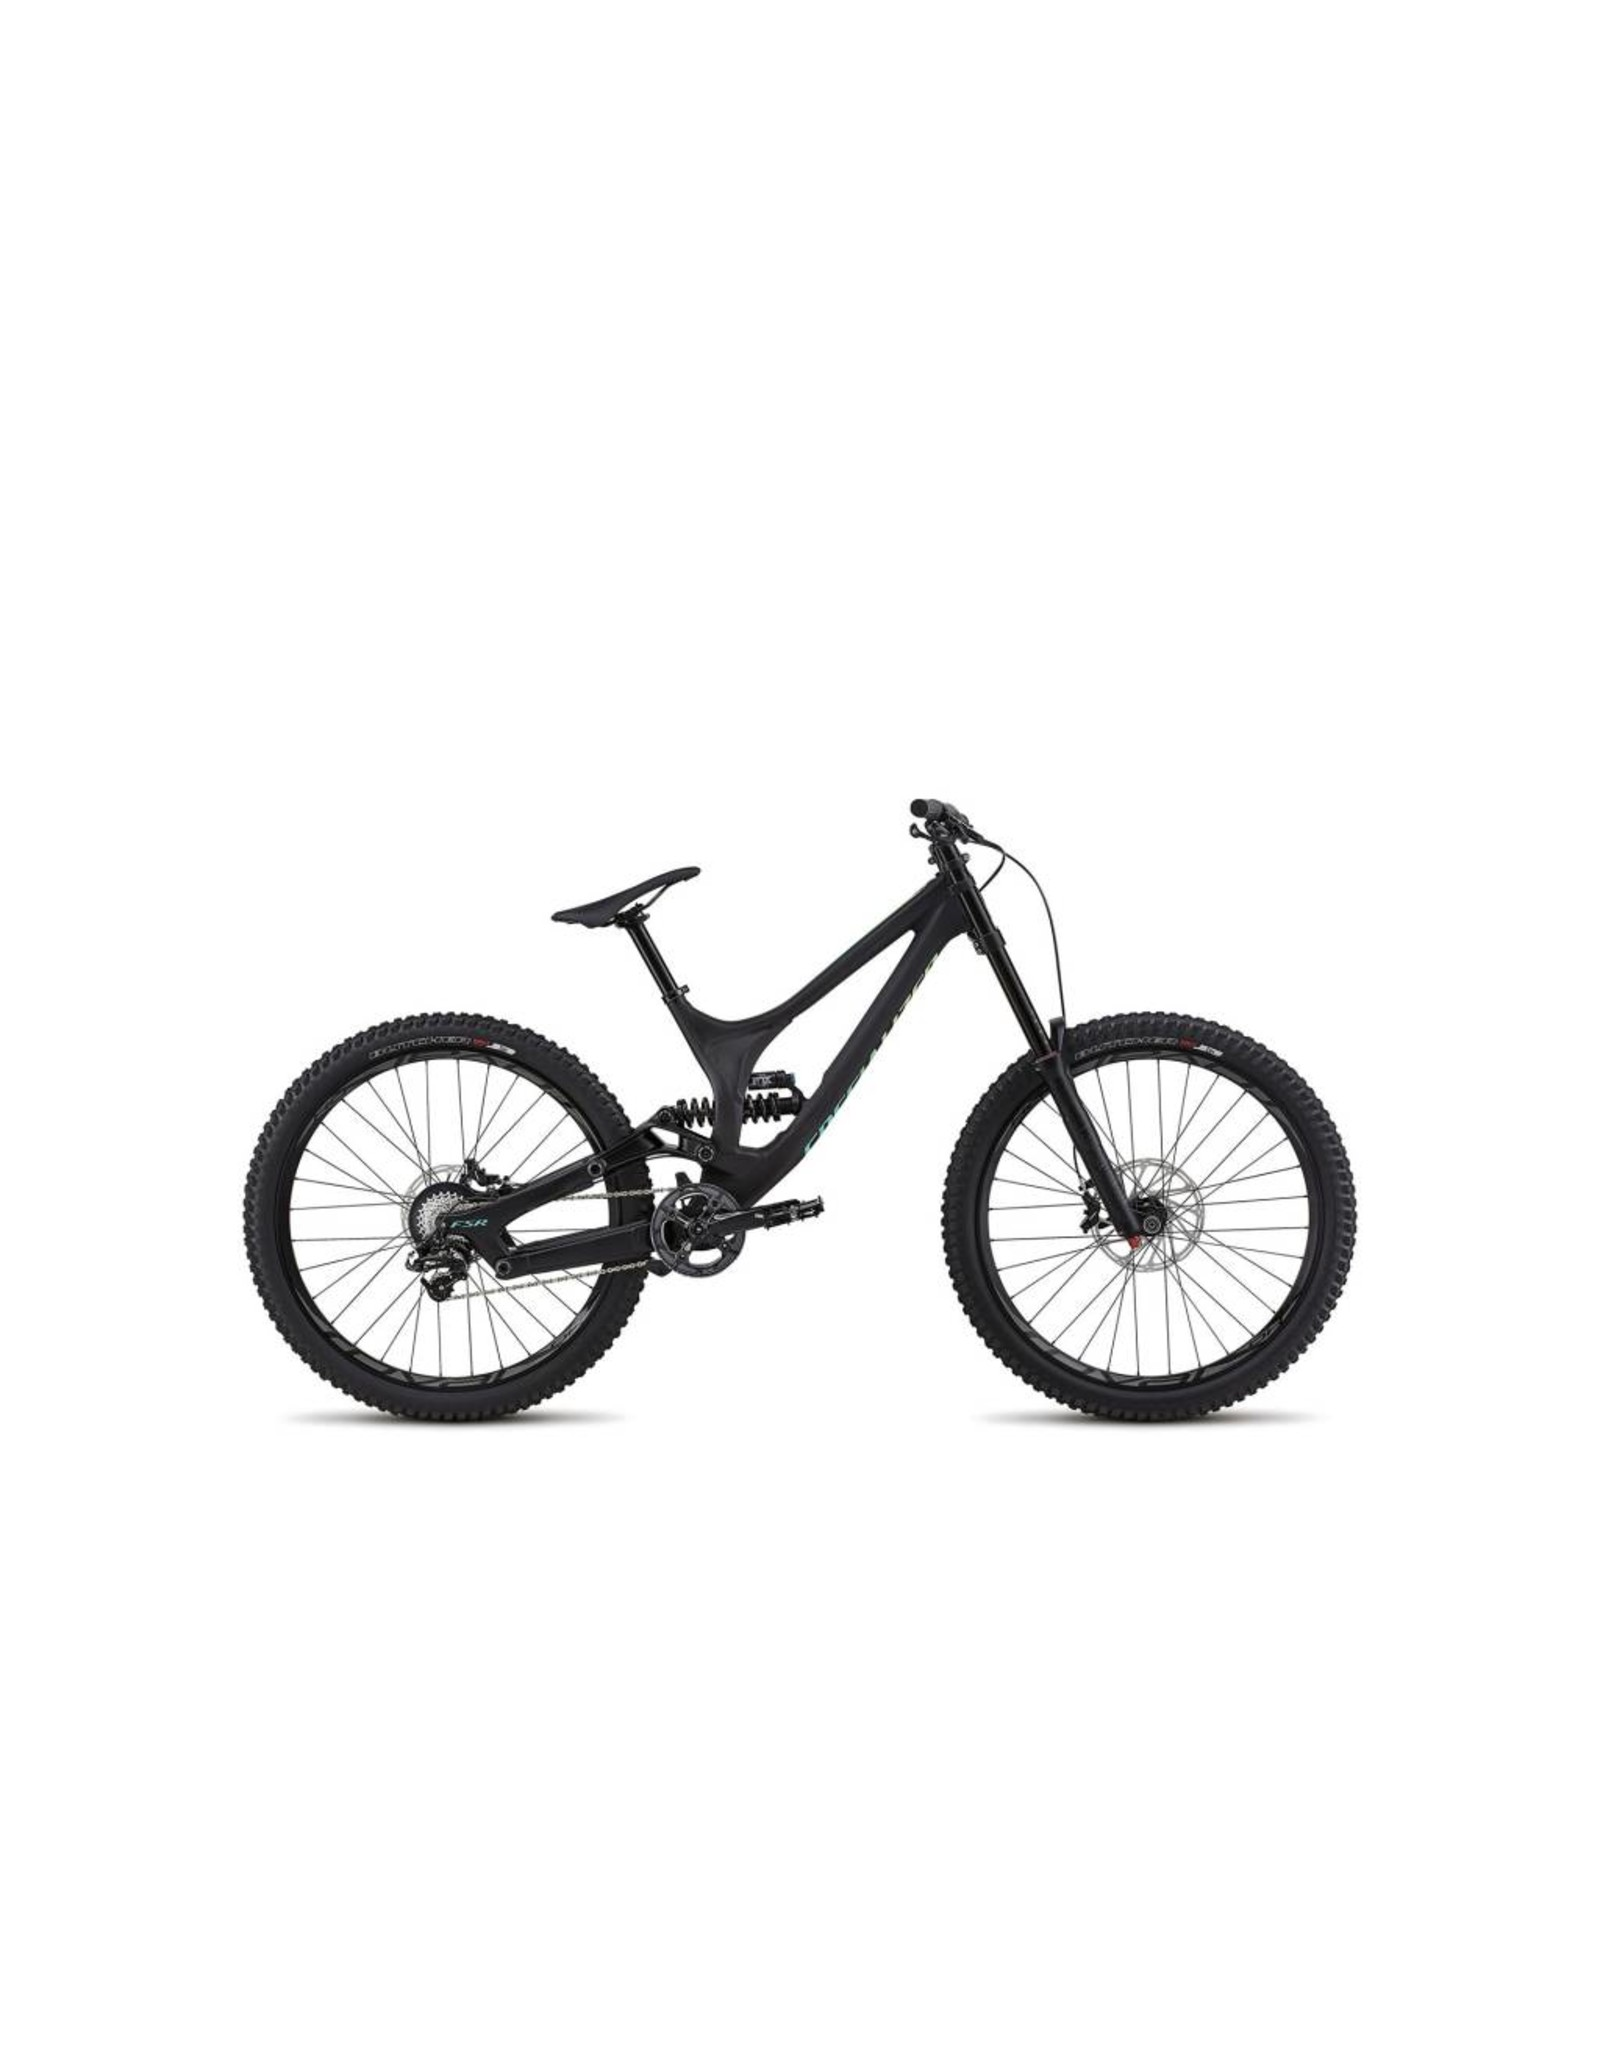 Specialized 2018 Demo 8 Alloy (XL)